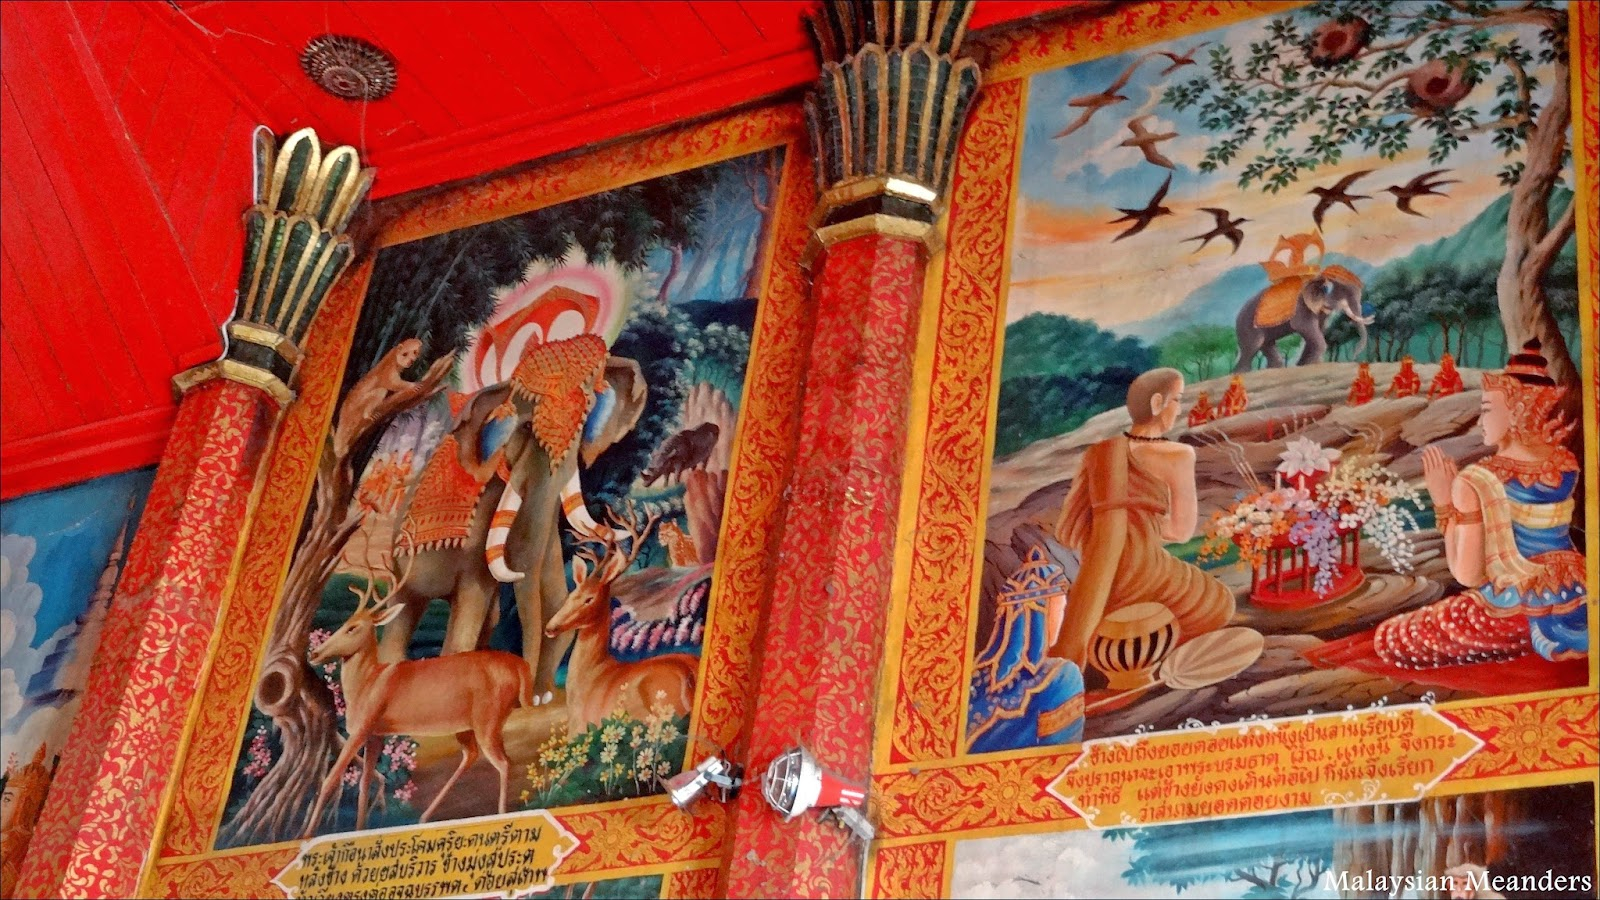 Wat Phra That, Doi Suthep, white elephant, temple, Chiang Mai